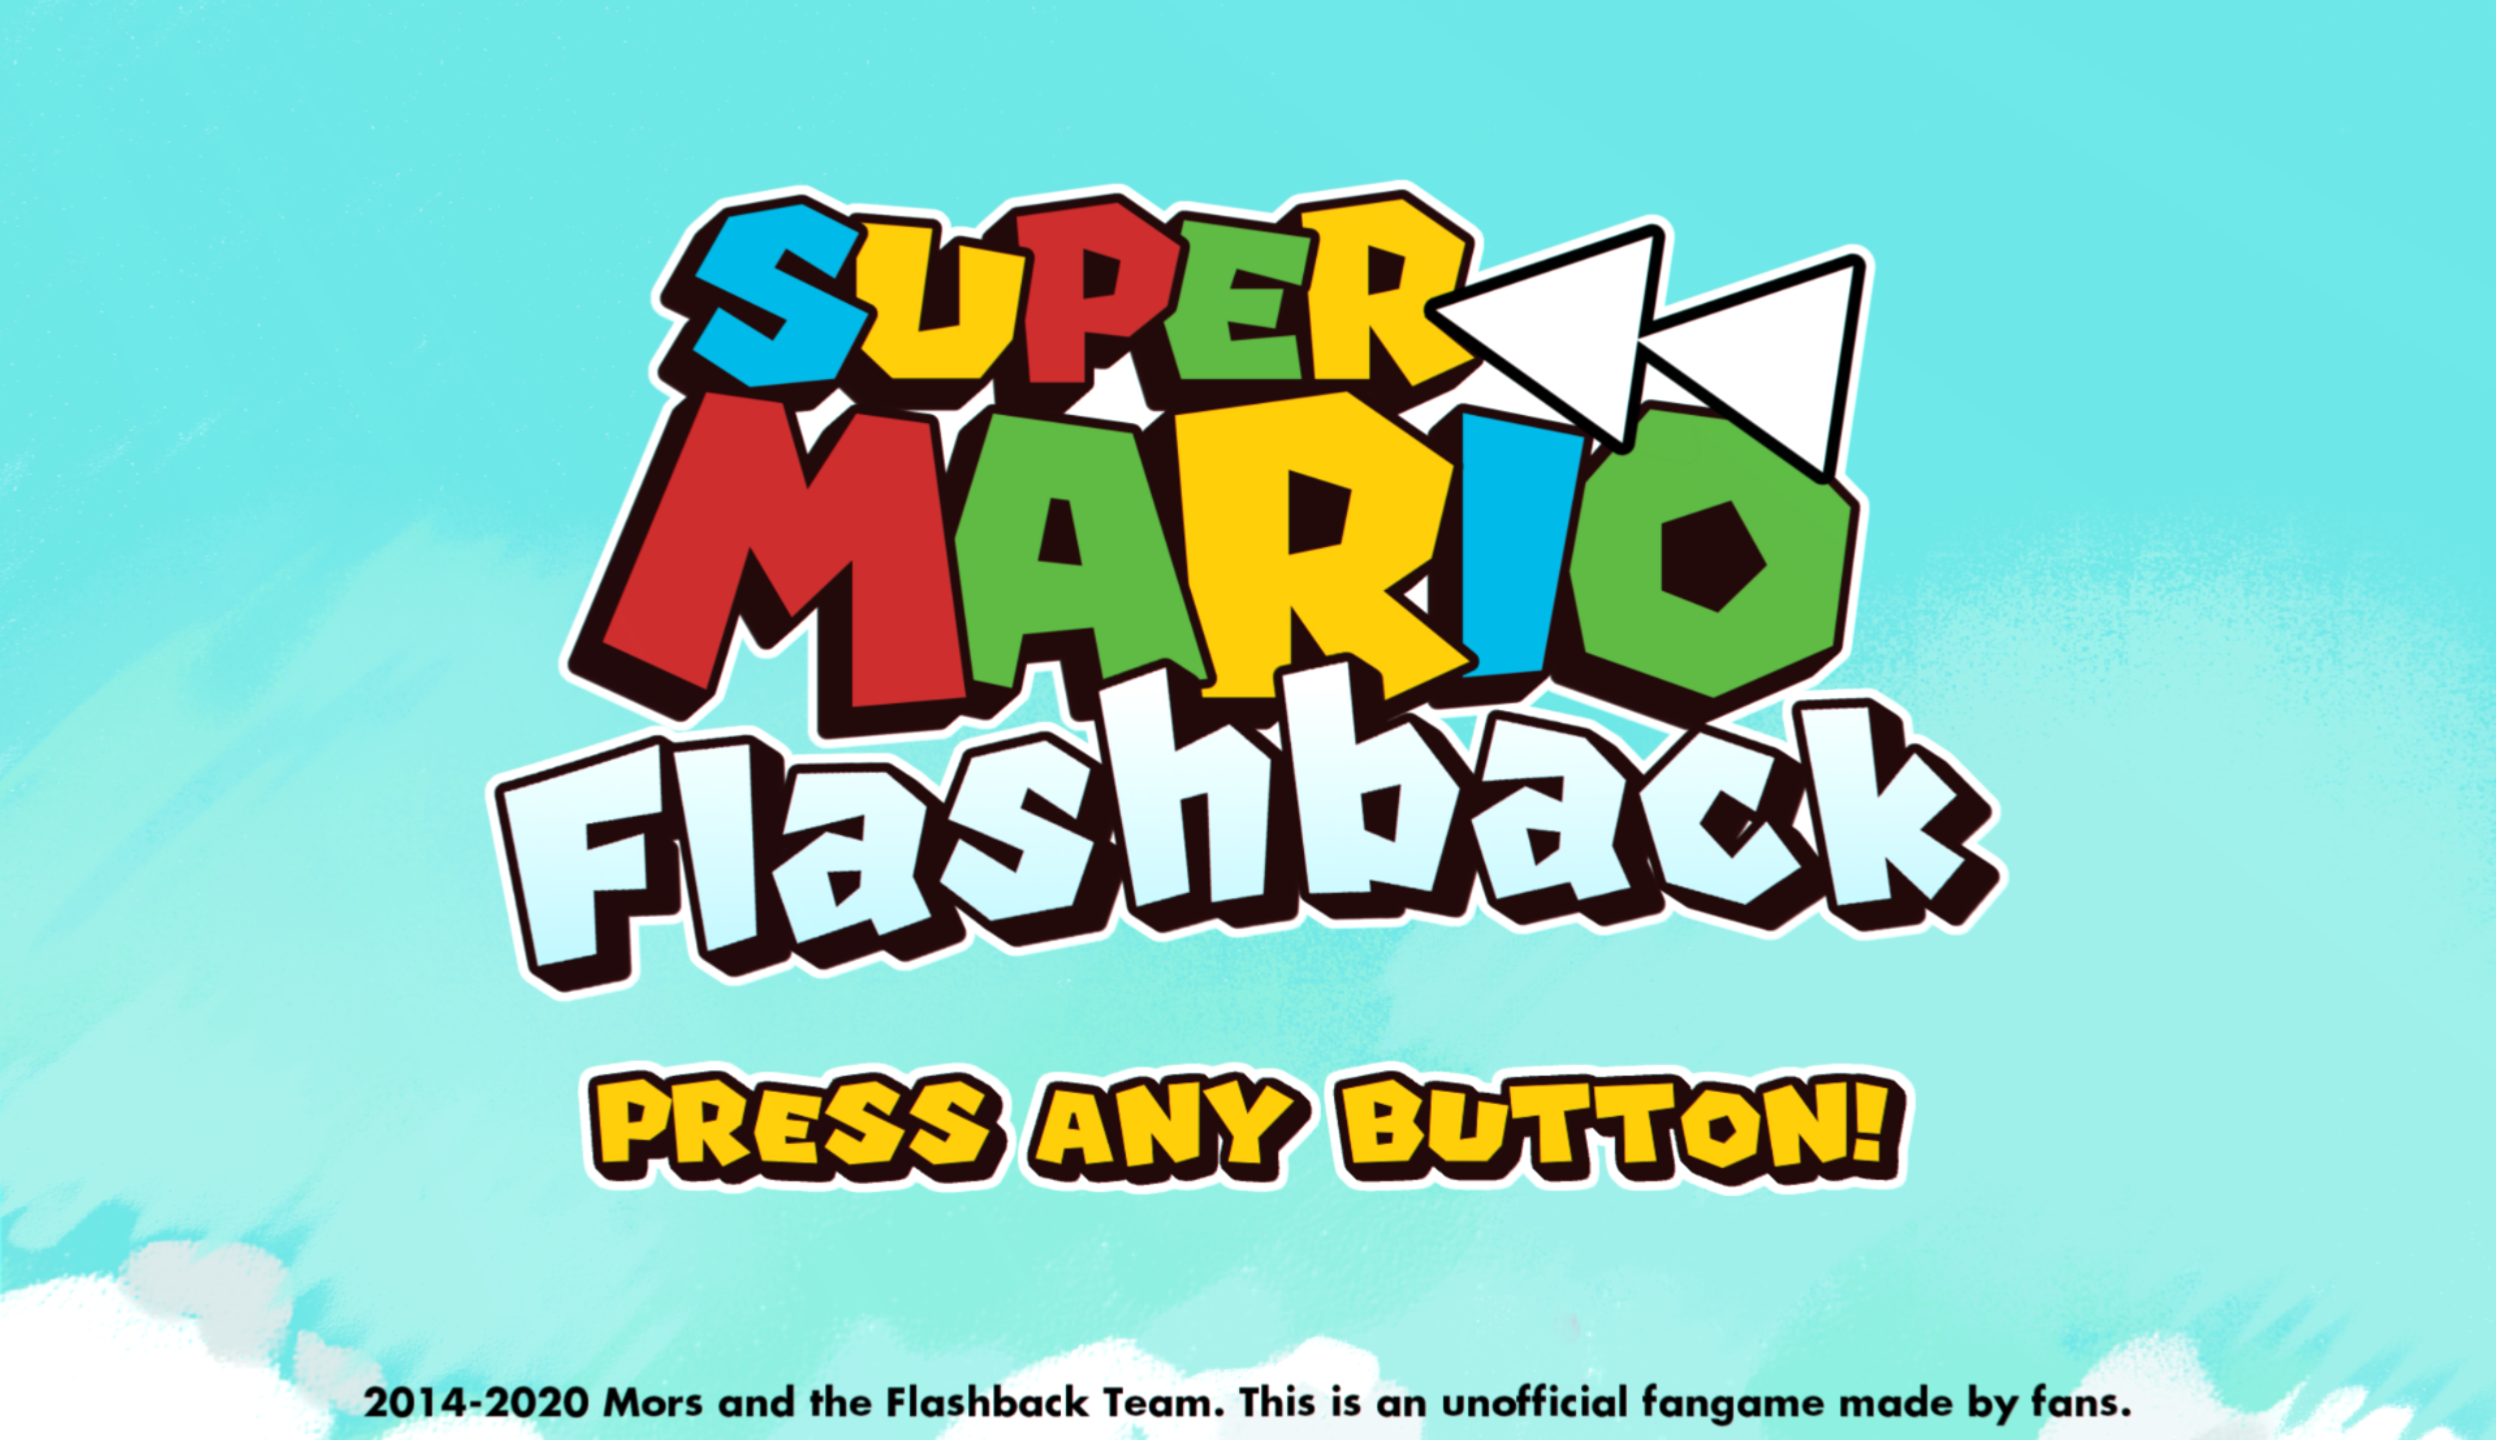 super-mario-flashback.png